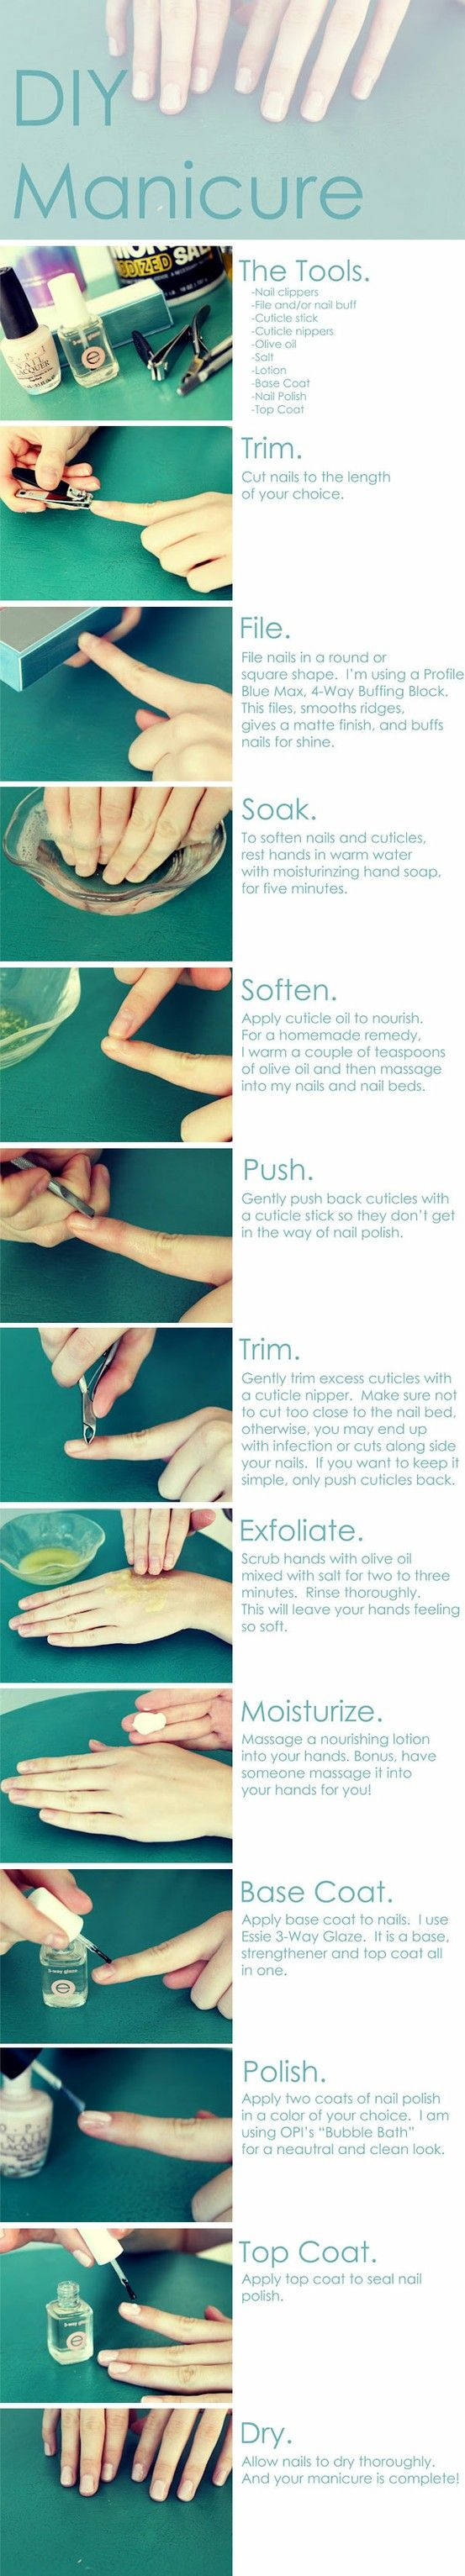 best images about uñas on pinterest nail art accent nails and